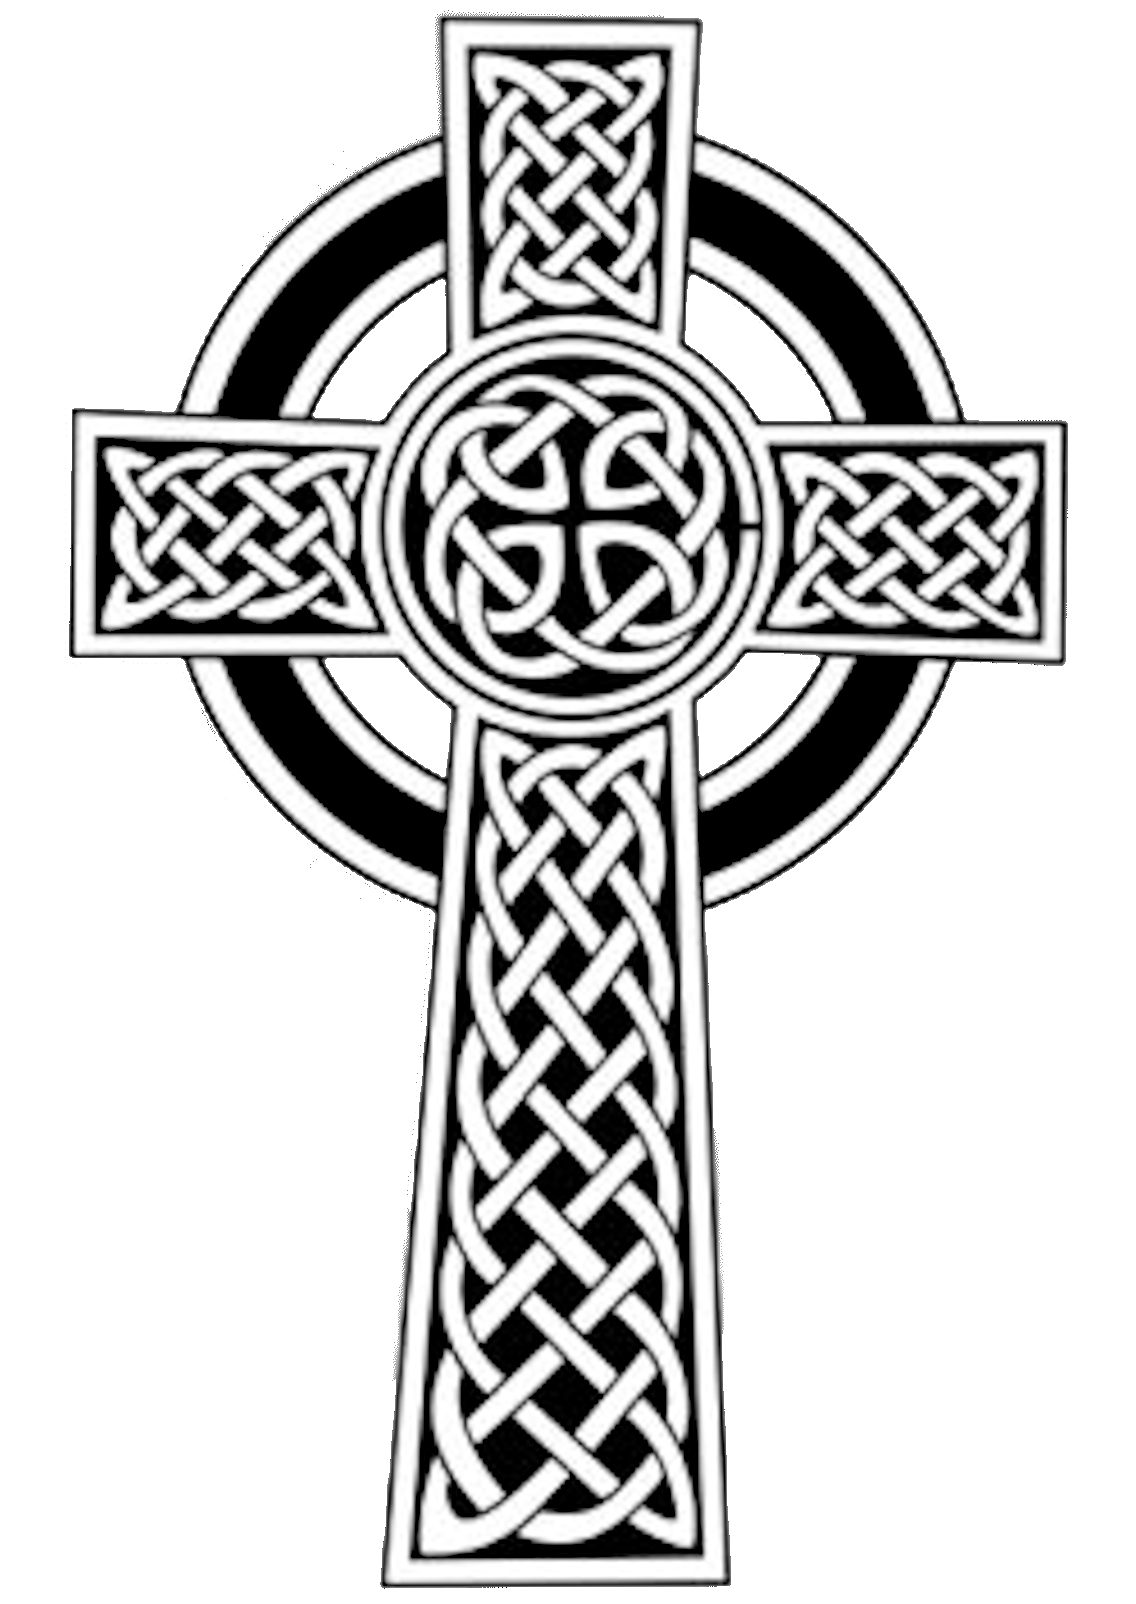 Celtic Cross Free Images At Clker